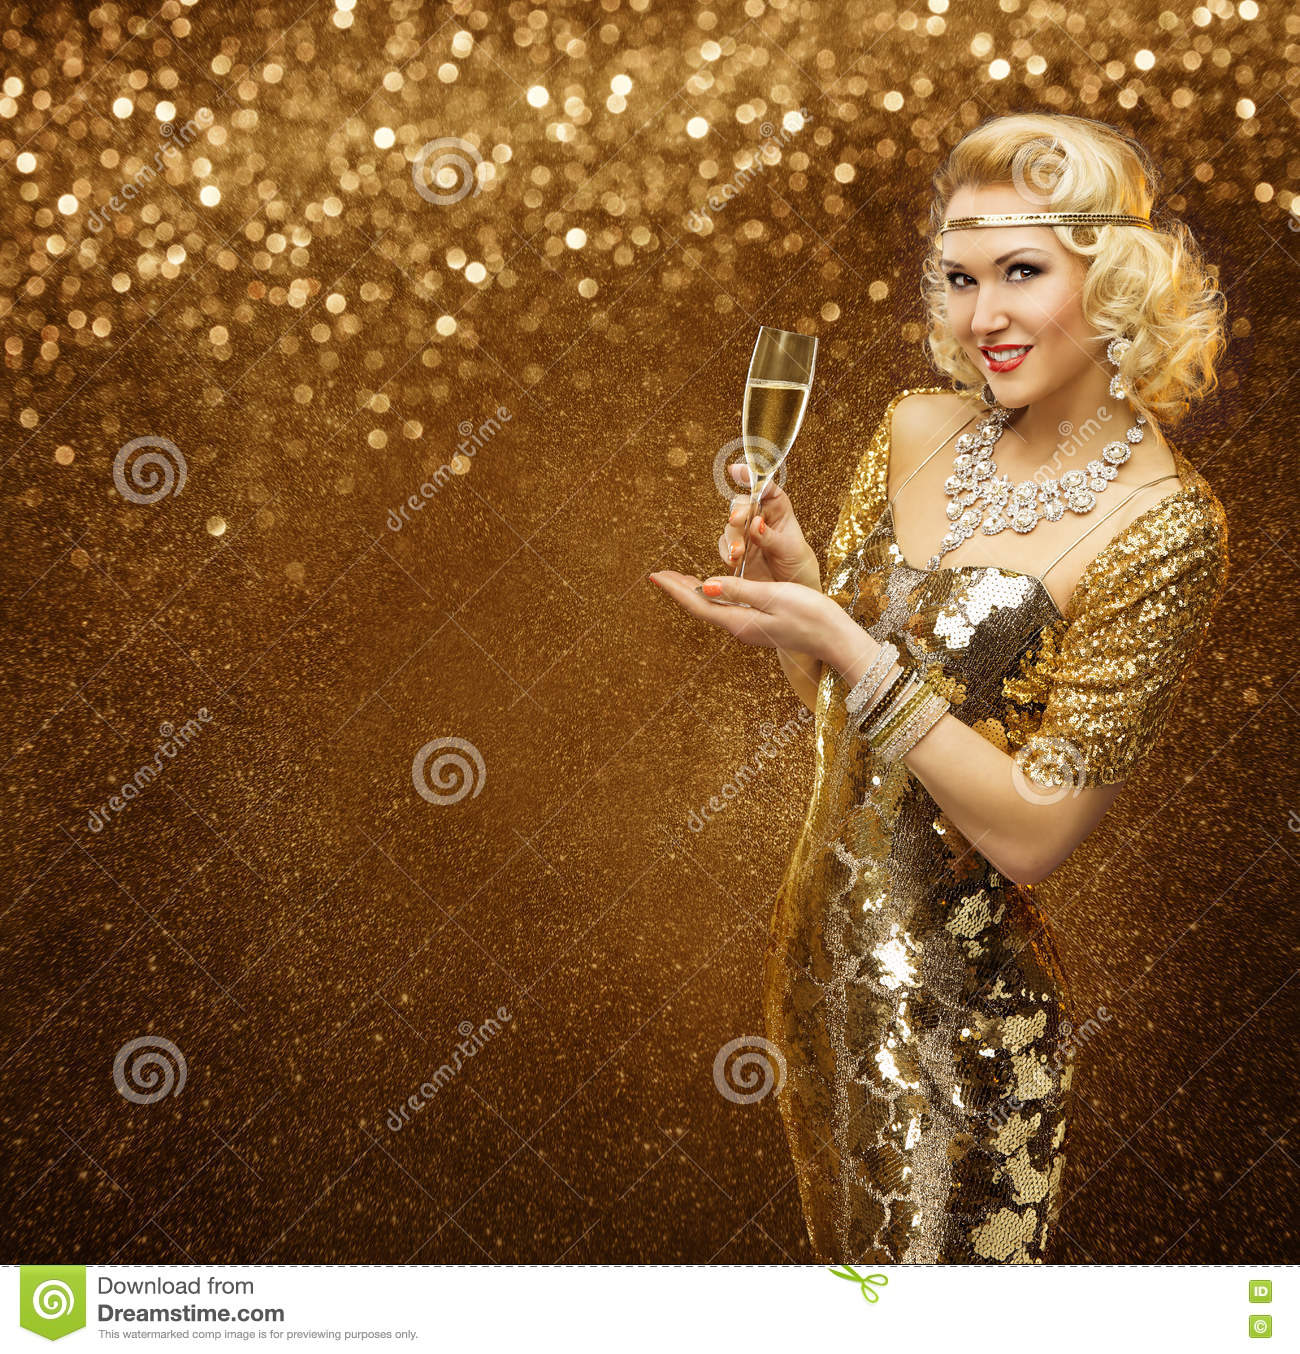 Vip Woman with Champagne Glass Celebrating Holiday Party